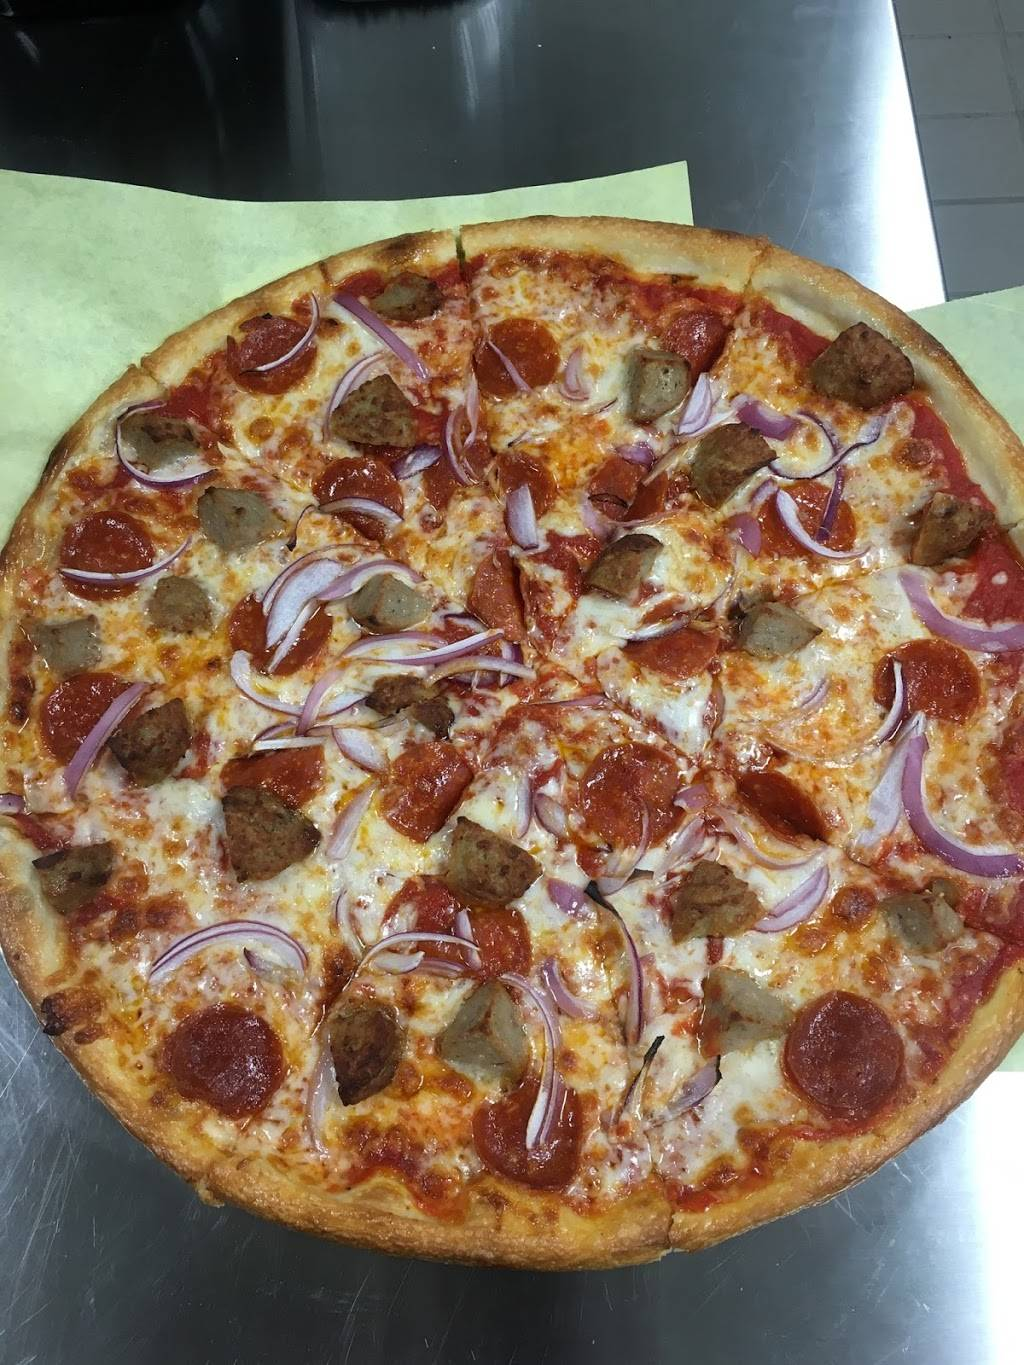 Pizza Place 123   meal takeaway   2528 S Alameda St, Vernon, CA 90058, USA   3236784123 OR +1 323-678-4123